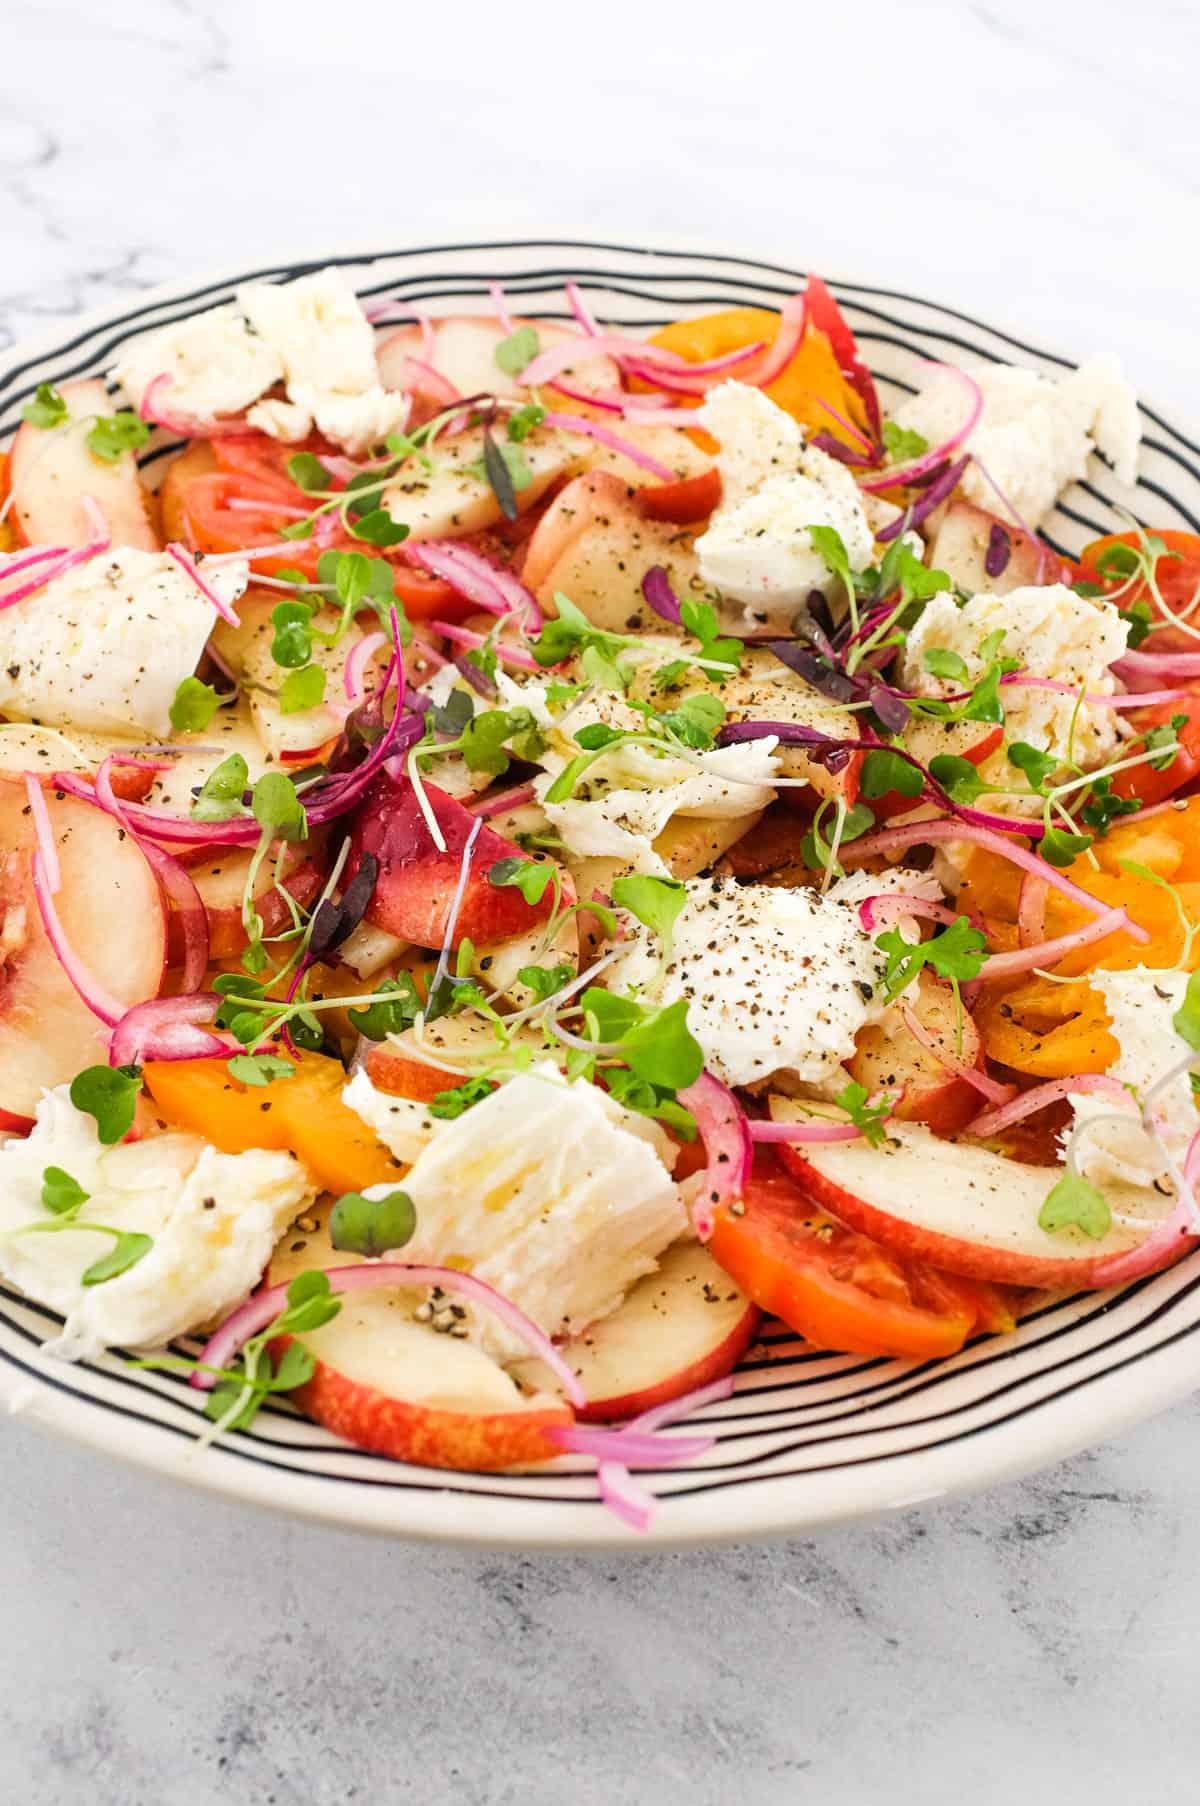 A salad of peaches, burrata cheese, tomato, red onion and micro greens sits on a marble countertop